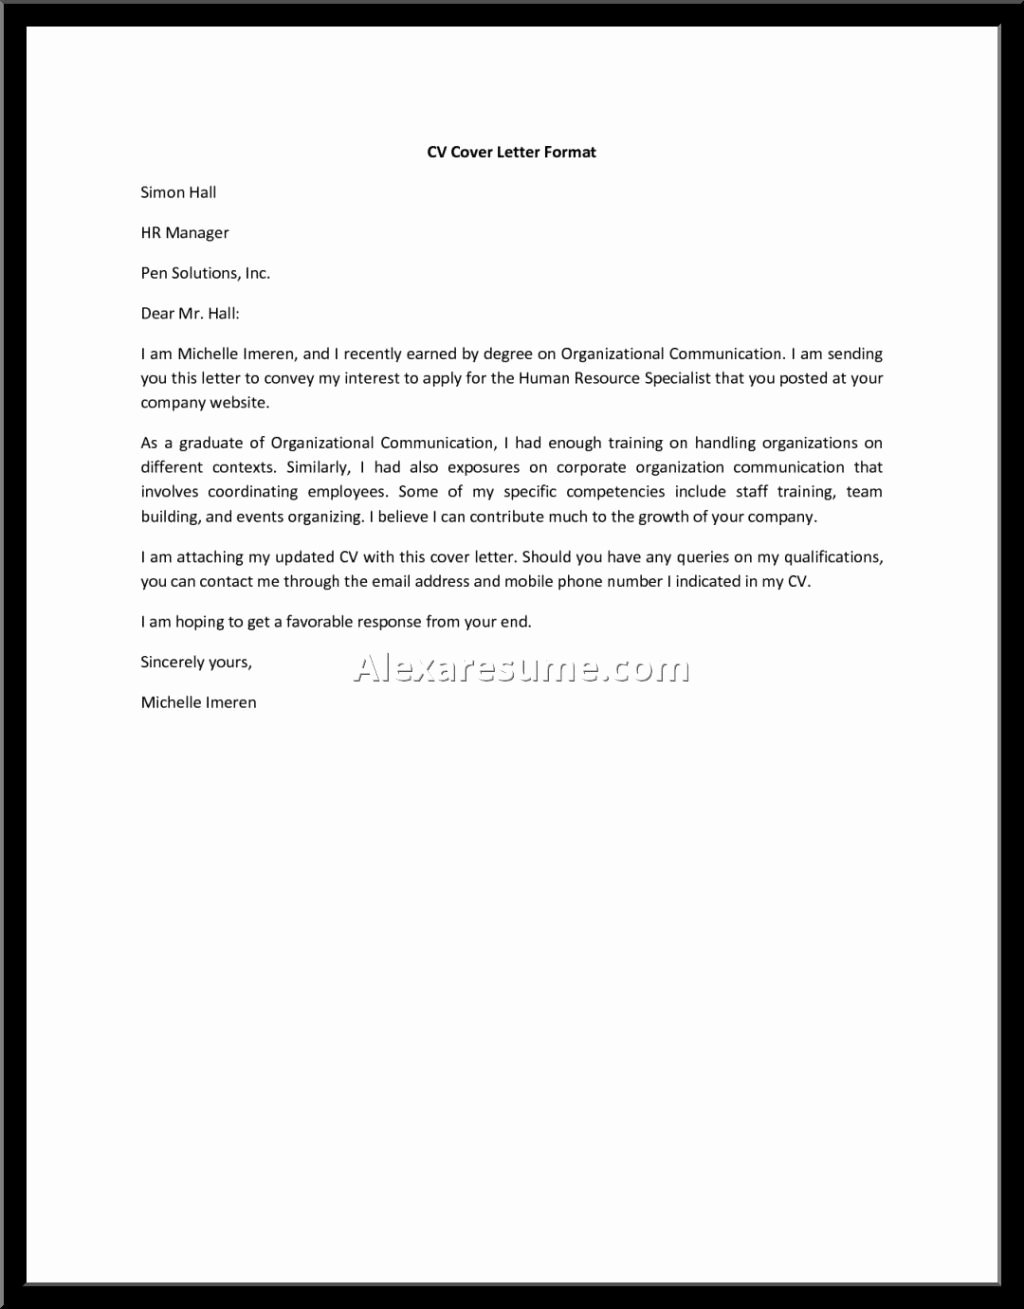 General Cover Letter Examples Inspirational Cover Letter for General Helper — General assistant Cover